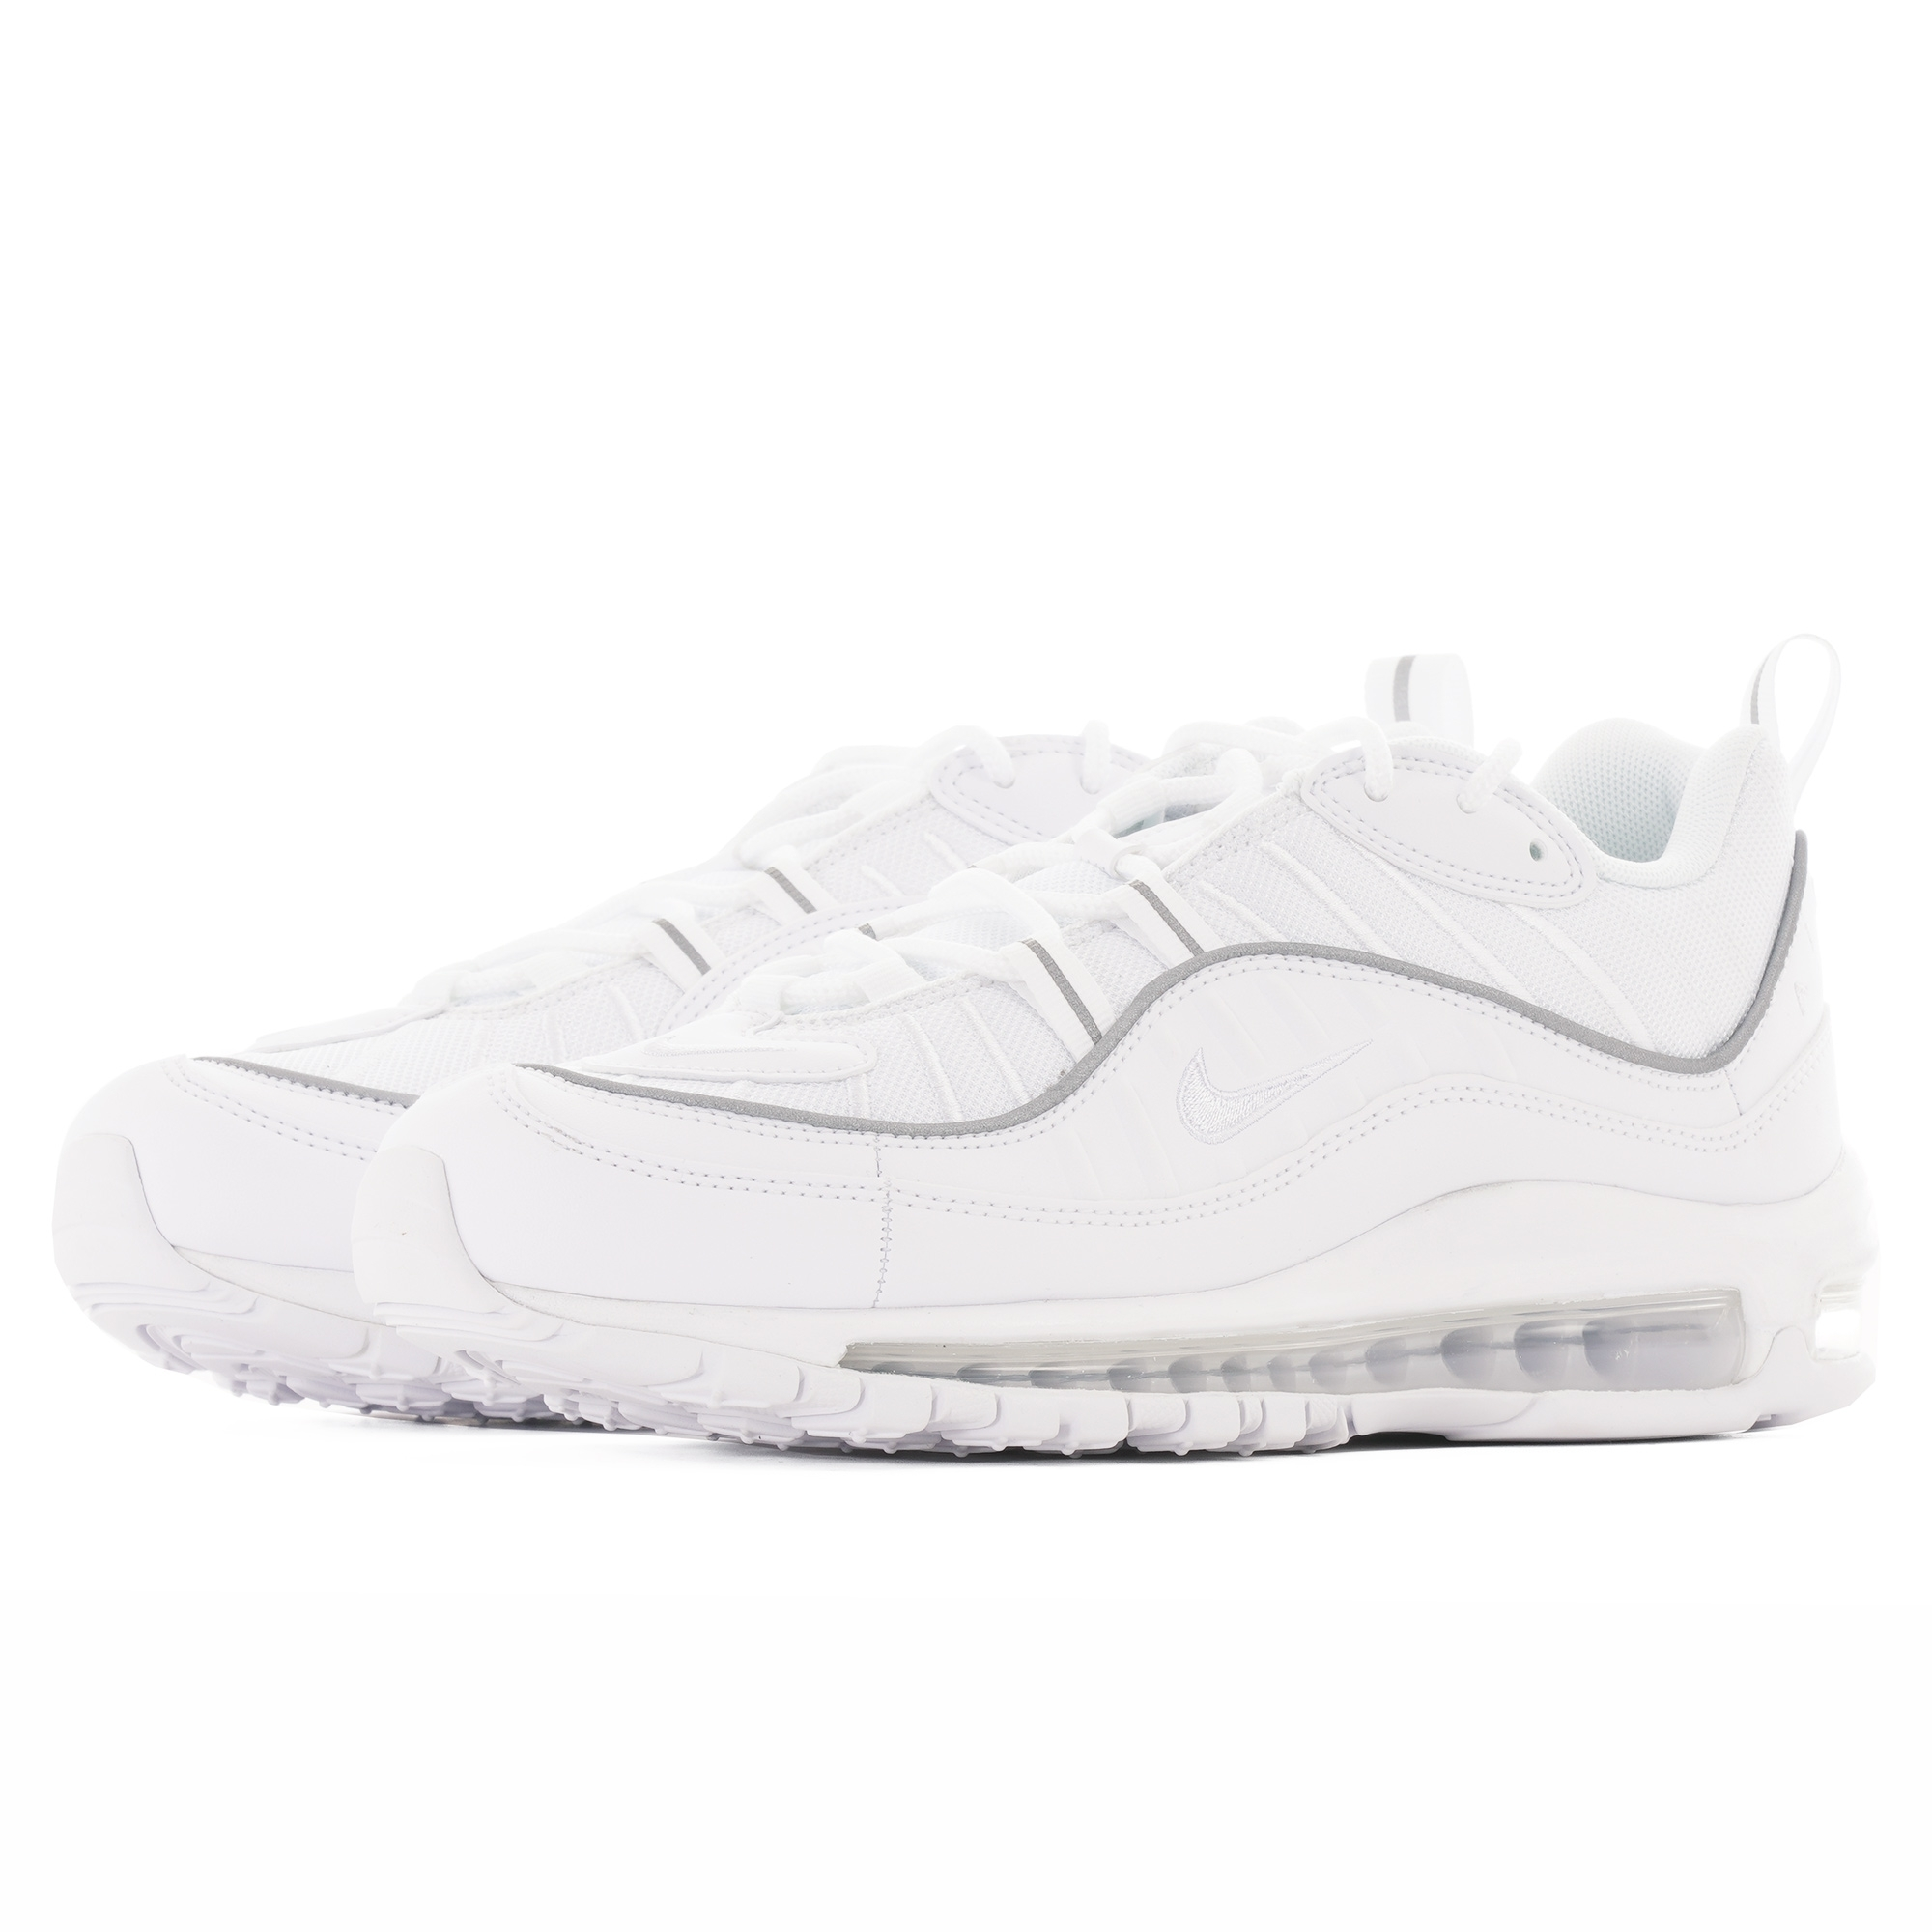 new style 4f855 52c25 Air Max 98 - White